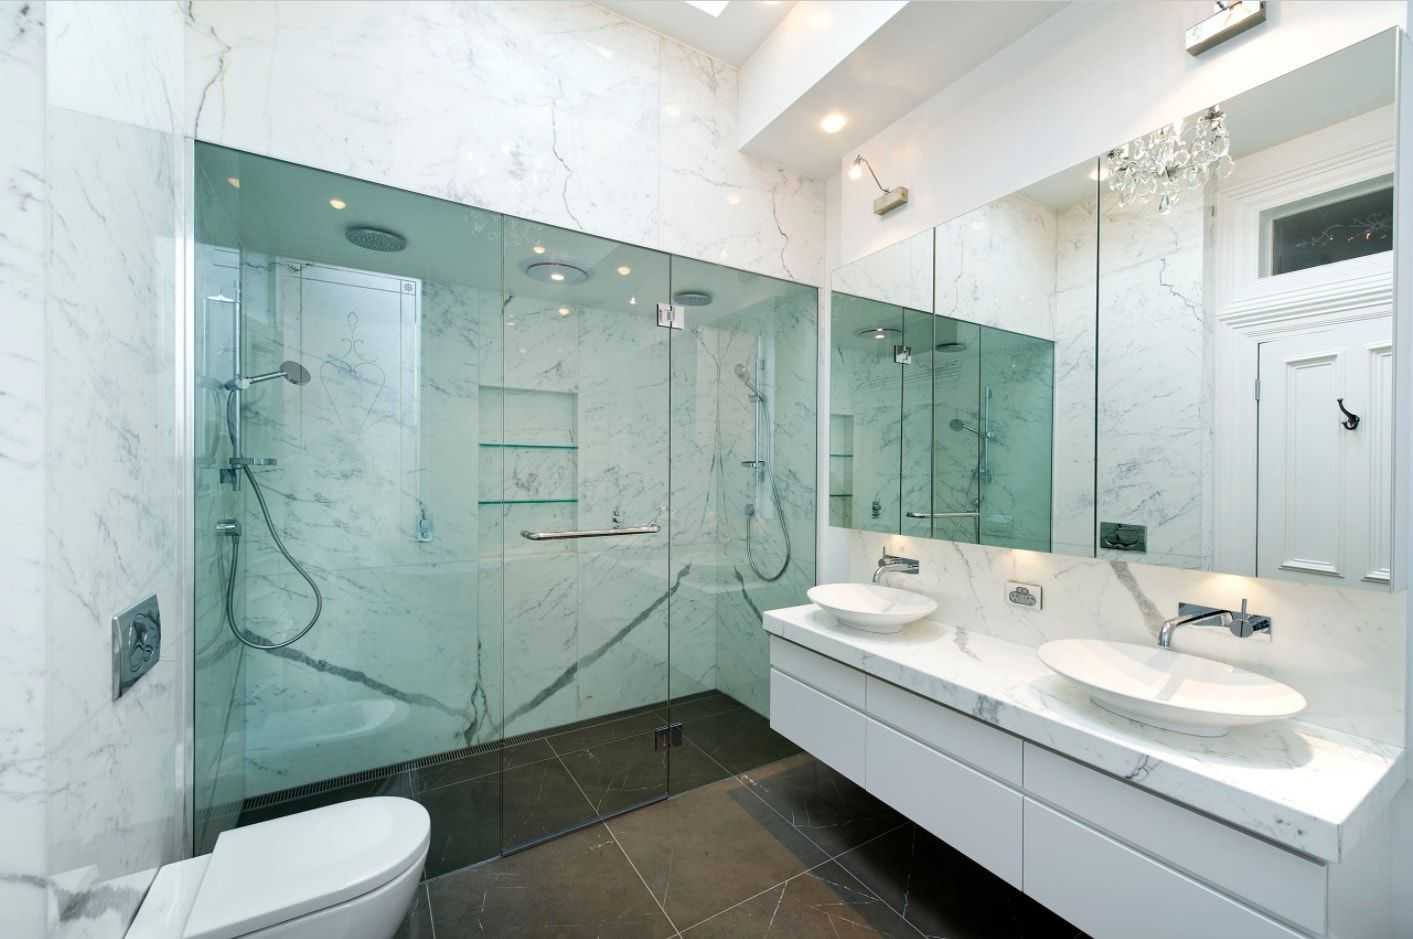 Amazing example of the main bathroom with large mirrors and glass partition of the shower zone